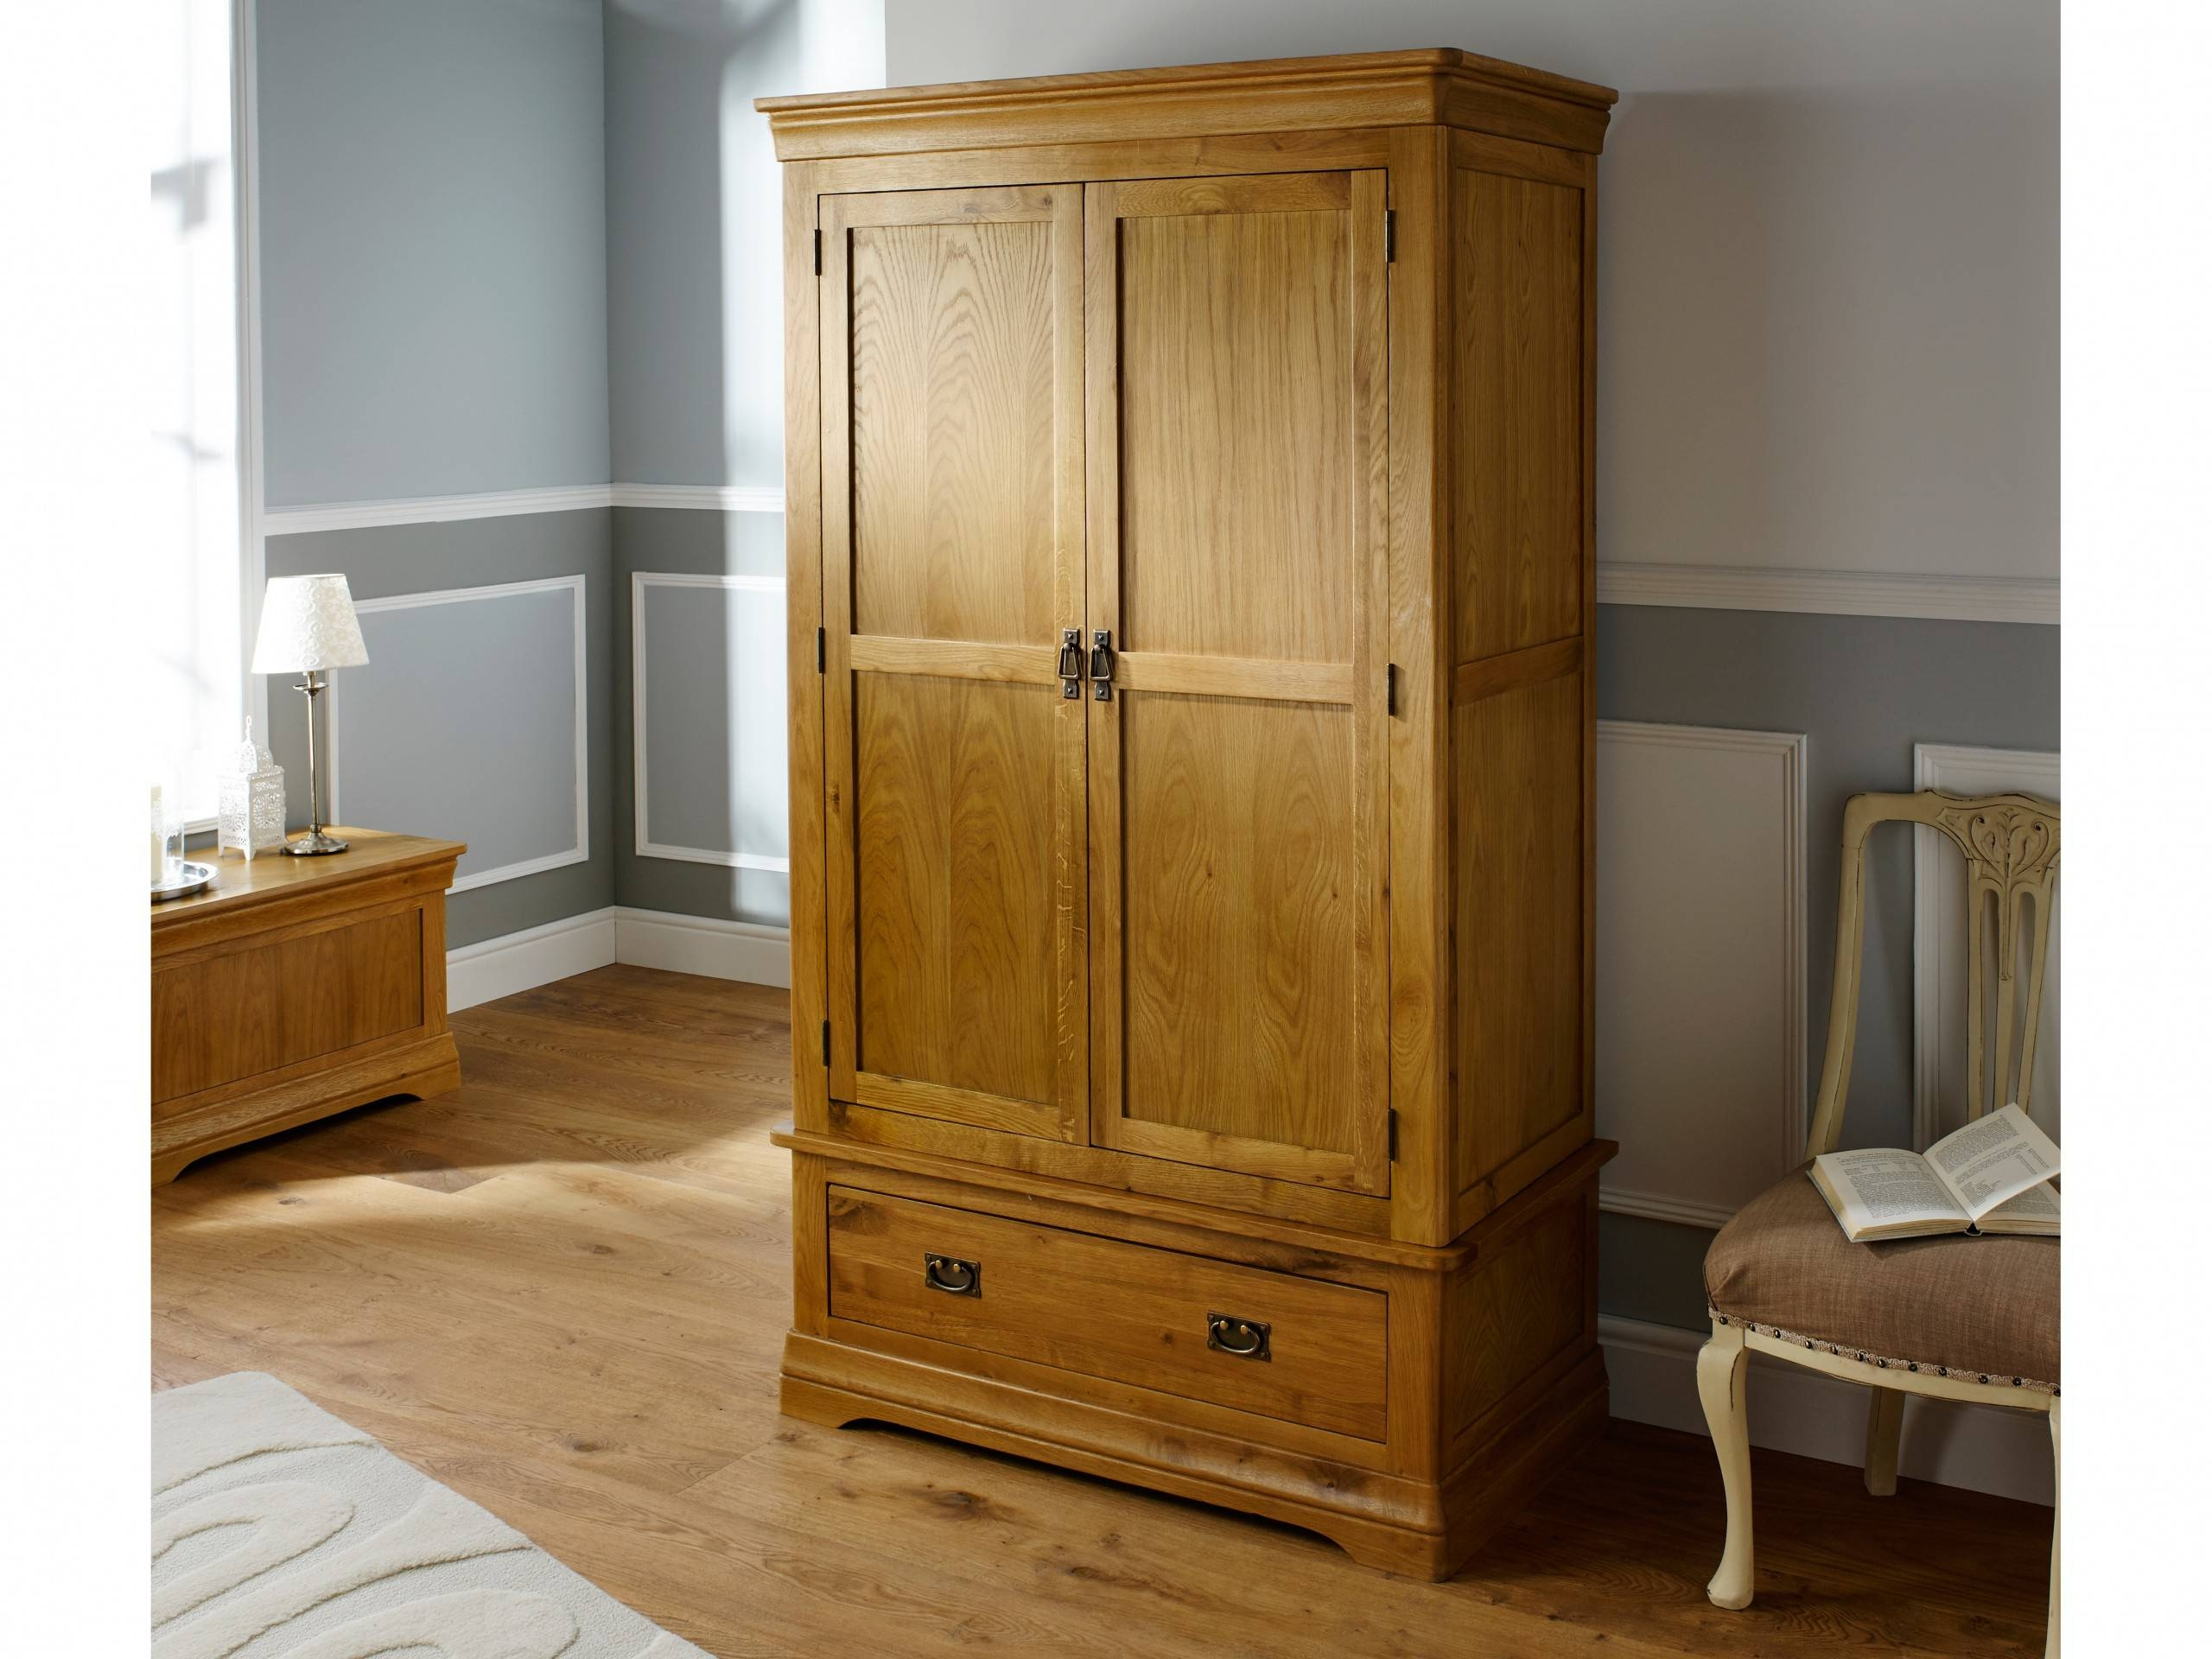 French Farmhouse Country Oak Double Wardrobe within Oak Wardrobes (Image 3 of 15)